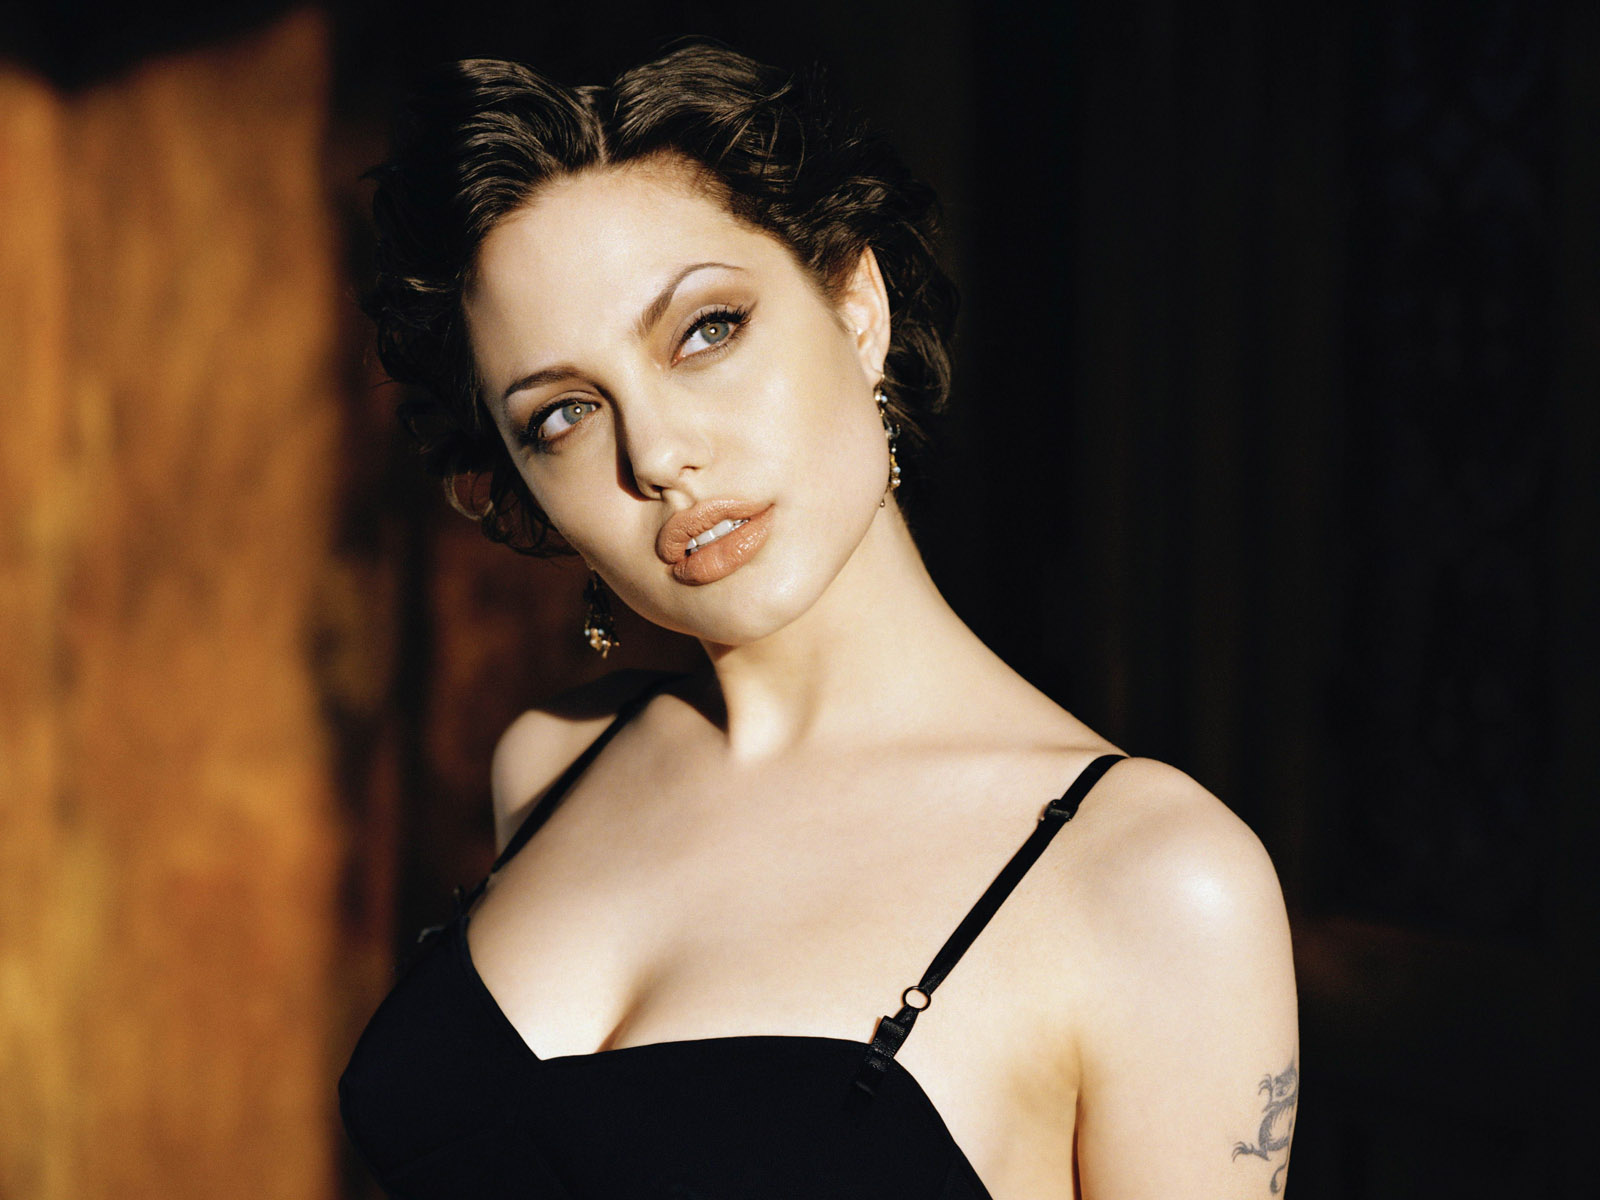 Angelina jolie wallpapers angelina jolie angelina jolie angelina jolie